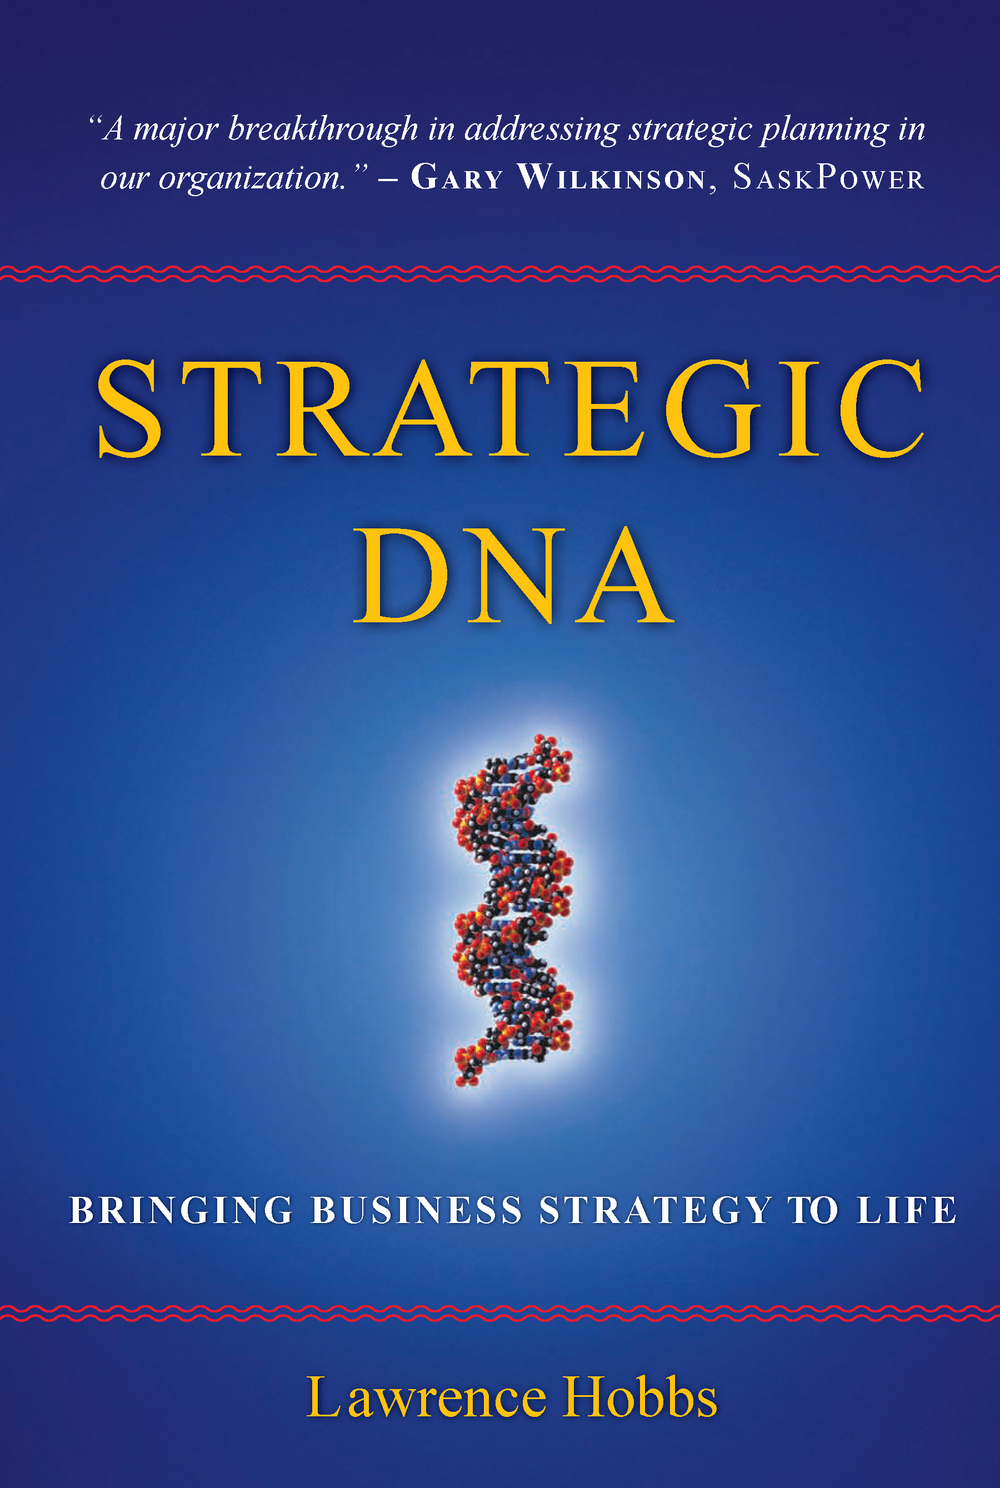 Strategic DNA_Page_01.png